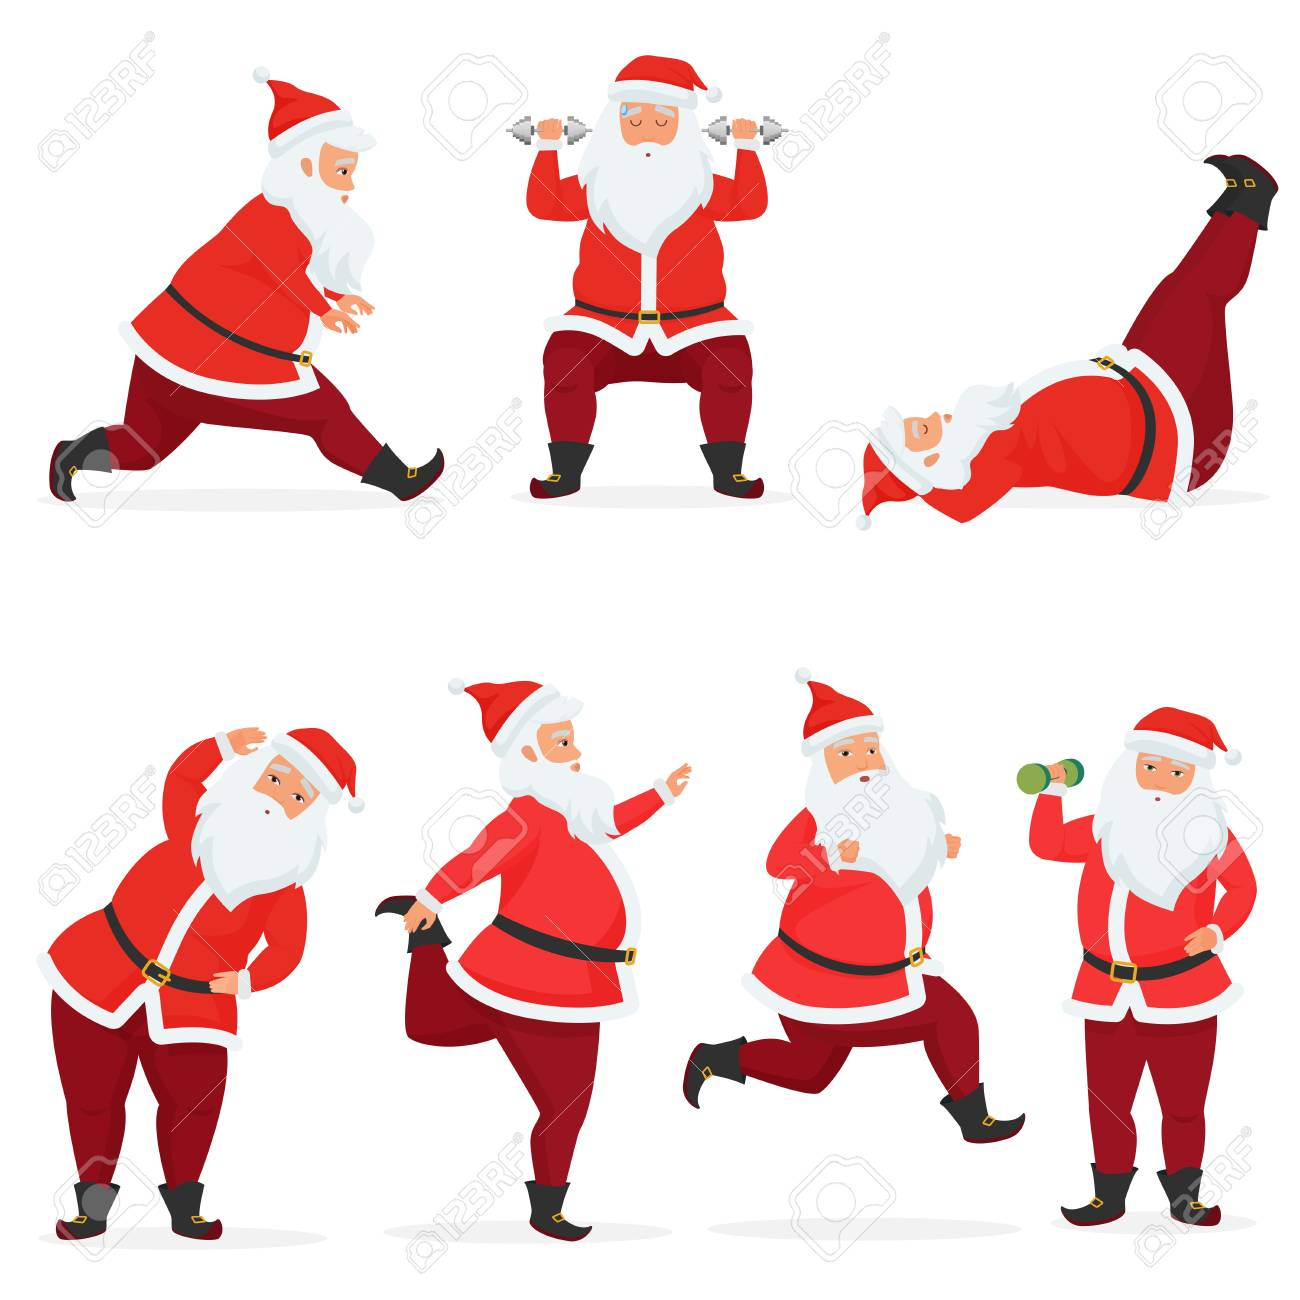 Vector funny and cute Santa Claus set does gym exercises with dumbbells and barbell isolated. Sport fitness santa - 122040257